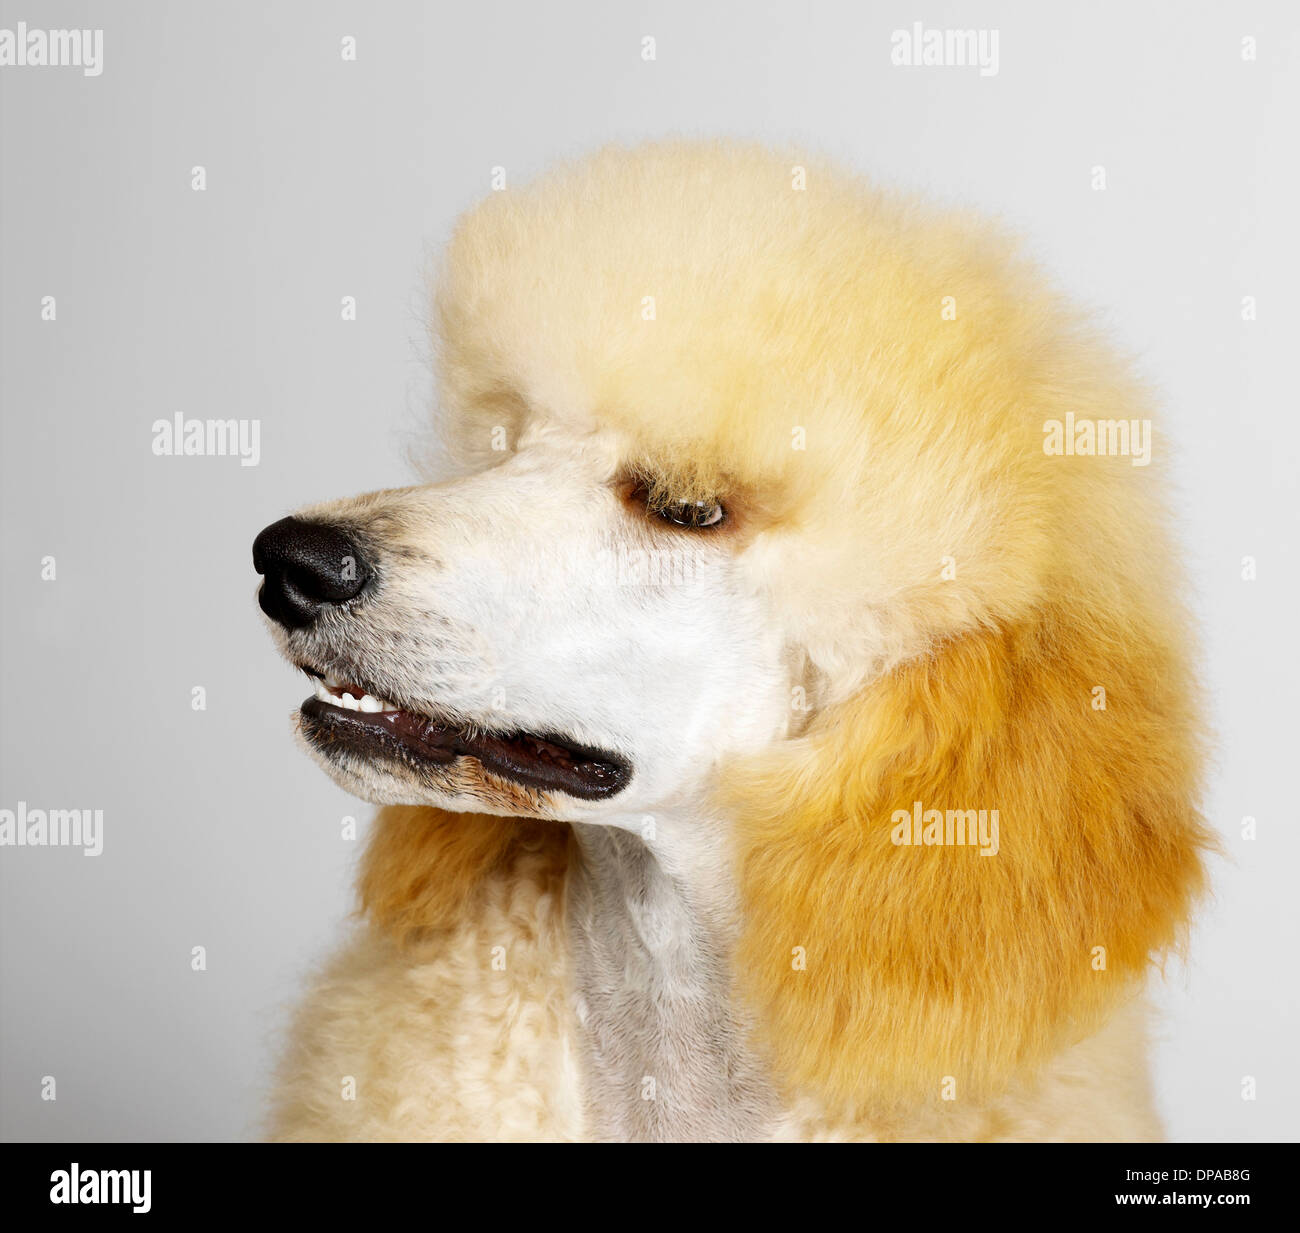 Standard Poodle Stock Photos & Standard Poodle Stock Images - Alamy